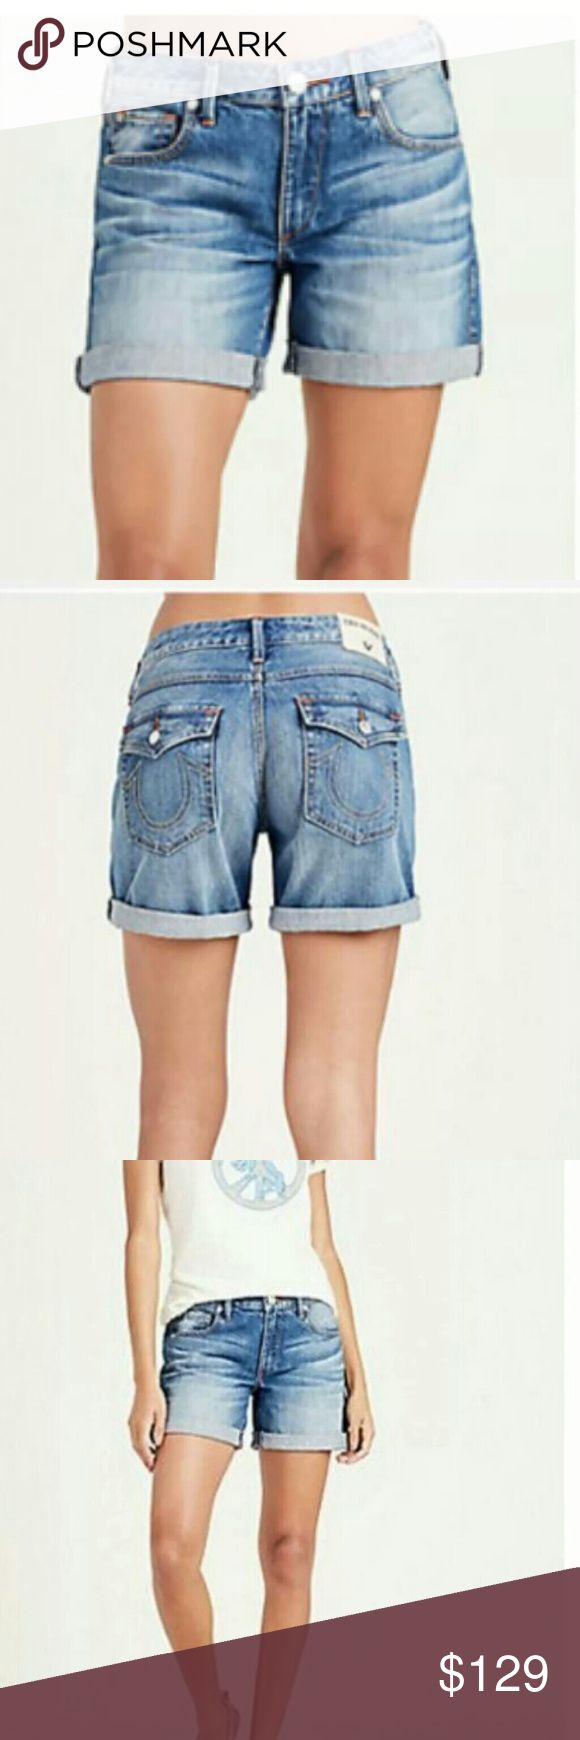 🔅True Religion EMMA low rise Bermuda shorts BNWT! 🔅True Religion EMMA low rise Bermuda short with flap (fold at hem)  💯Authentic AND BRAND NEW WITH TAGS  🔅Sealed still in original package! For serious buyers I will unpack for full measurements if requested  🔅Sold out everywhere  🔅Color Blues Fest (looks lighter in stock photos). Size 25.  💌Free gift with purchase. Offers considered. True Religion Shorts Jean Shorts